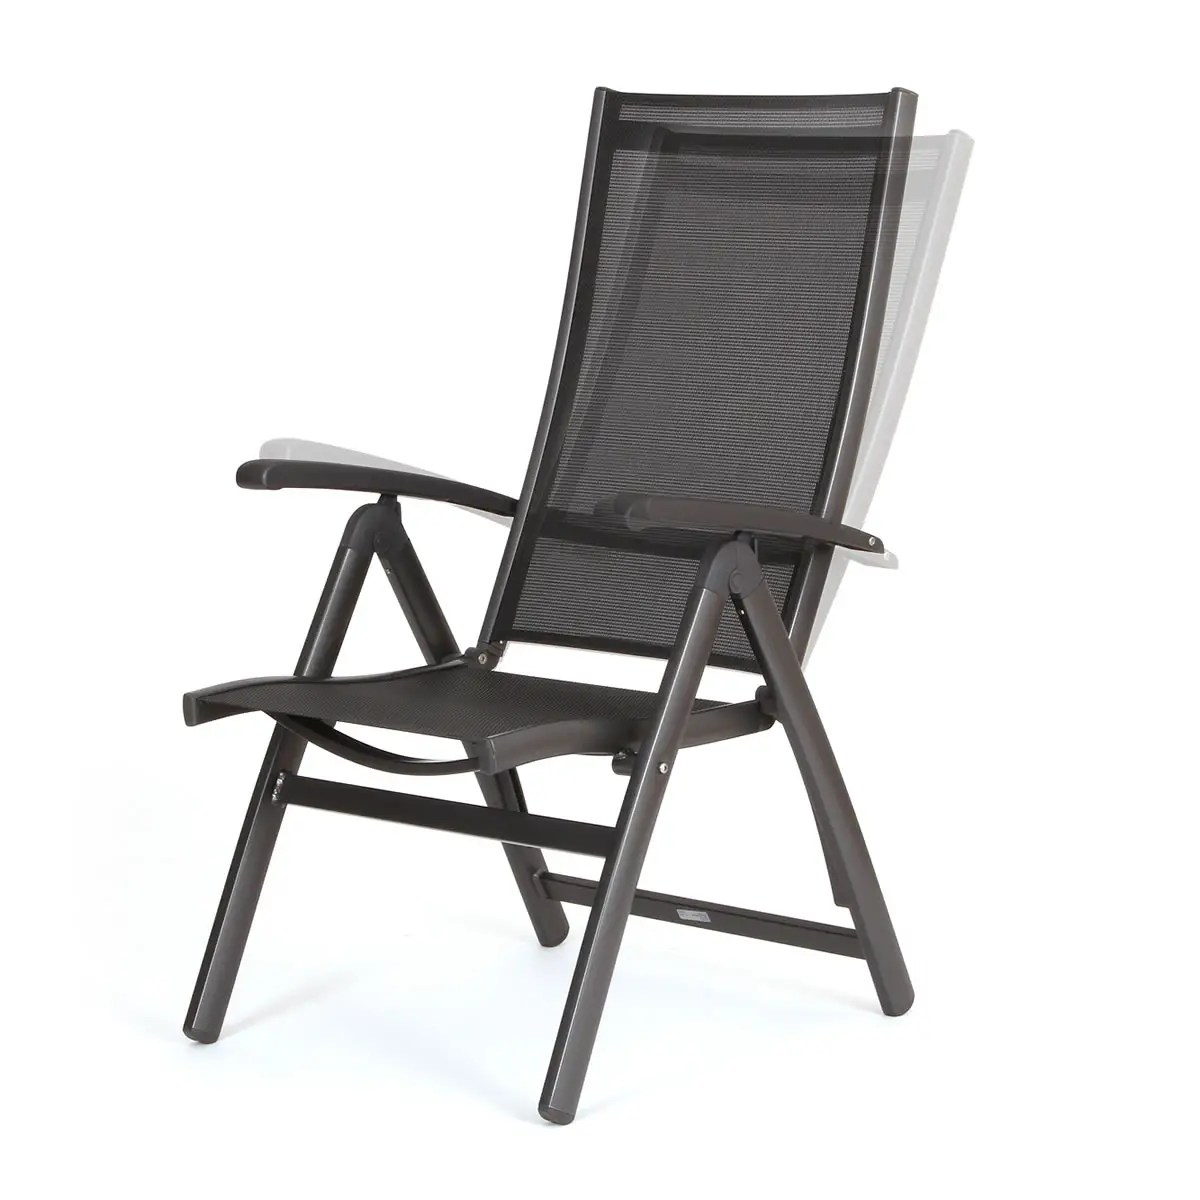 aluminium reclining garden chairs uk football chair and ottoman gardenfurnitureworld mobile